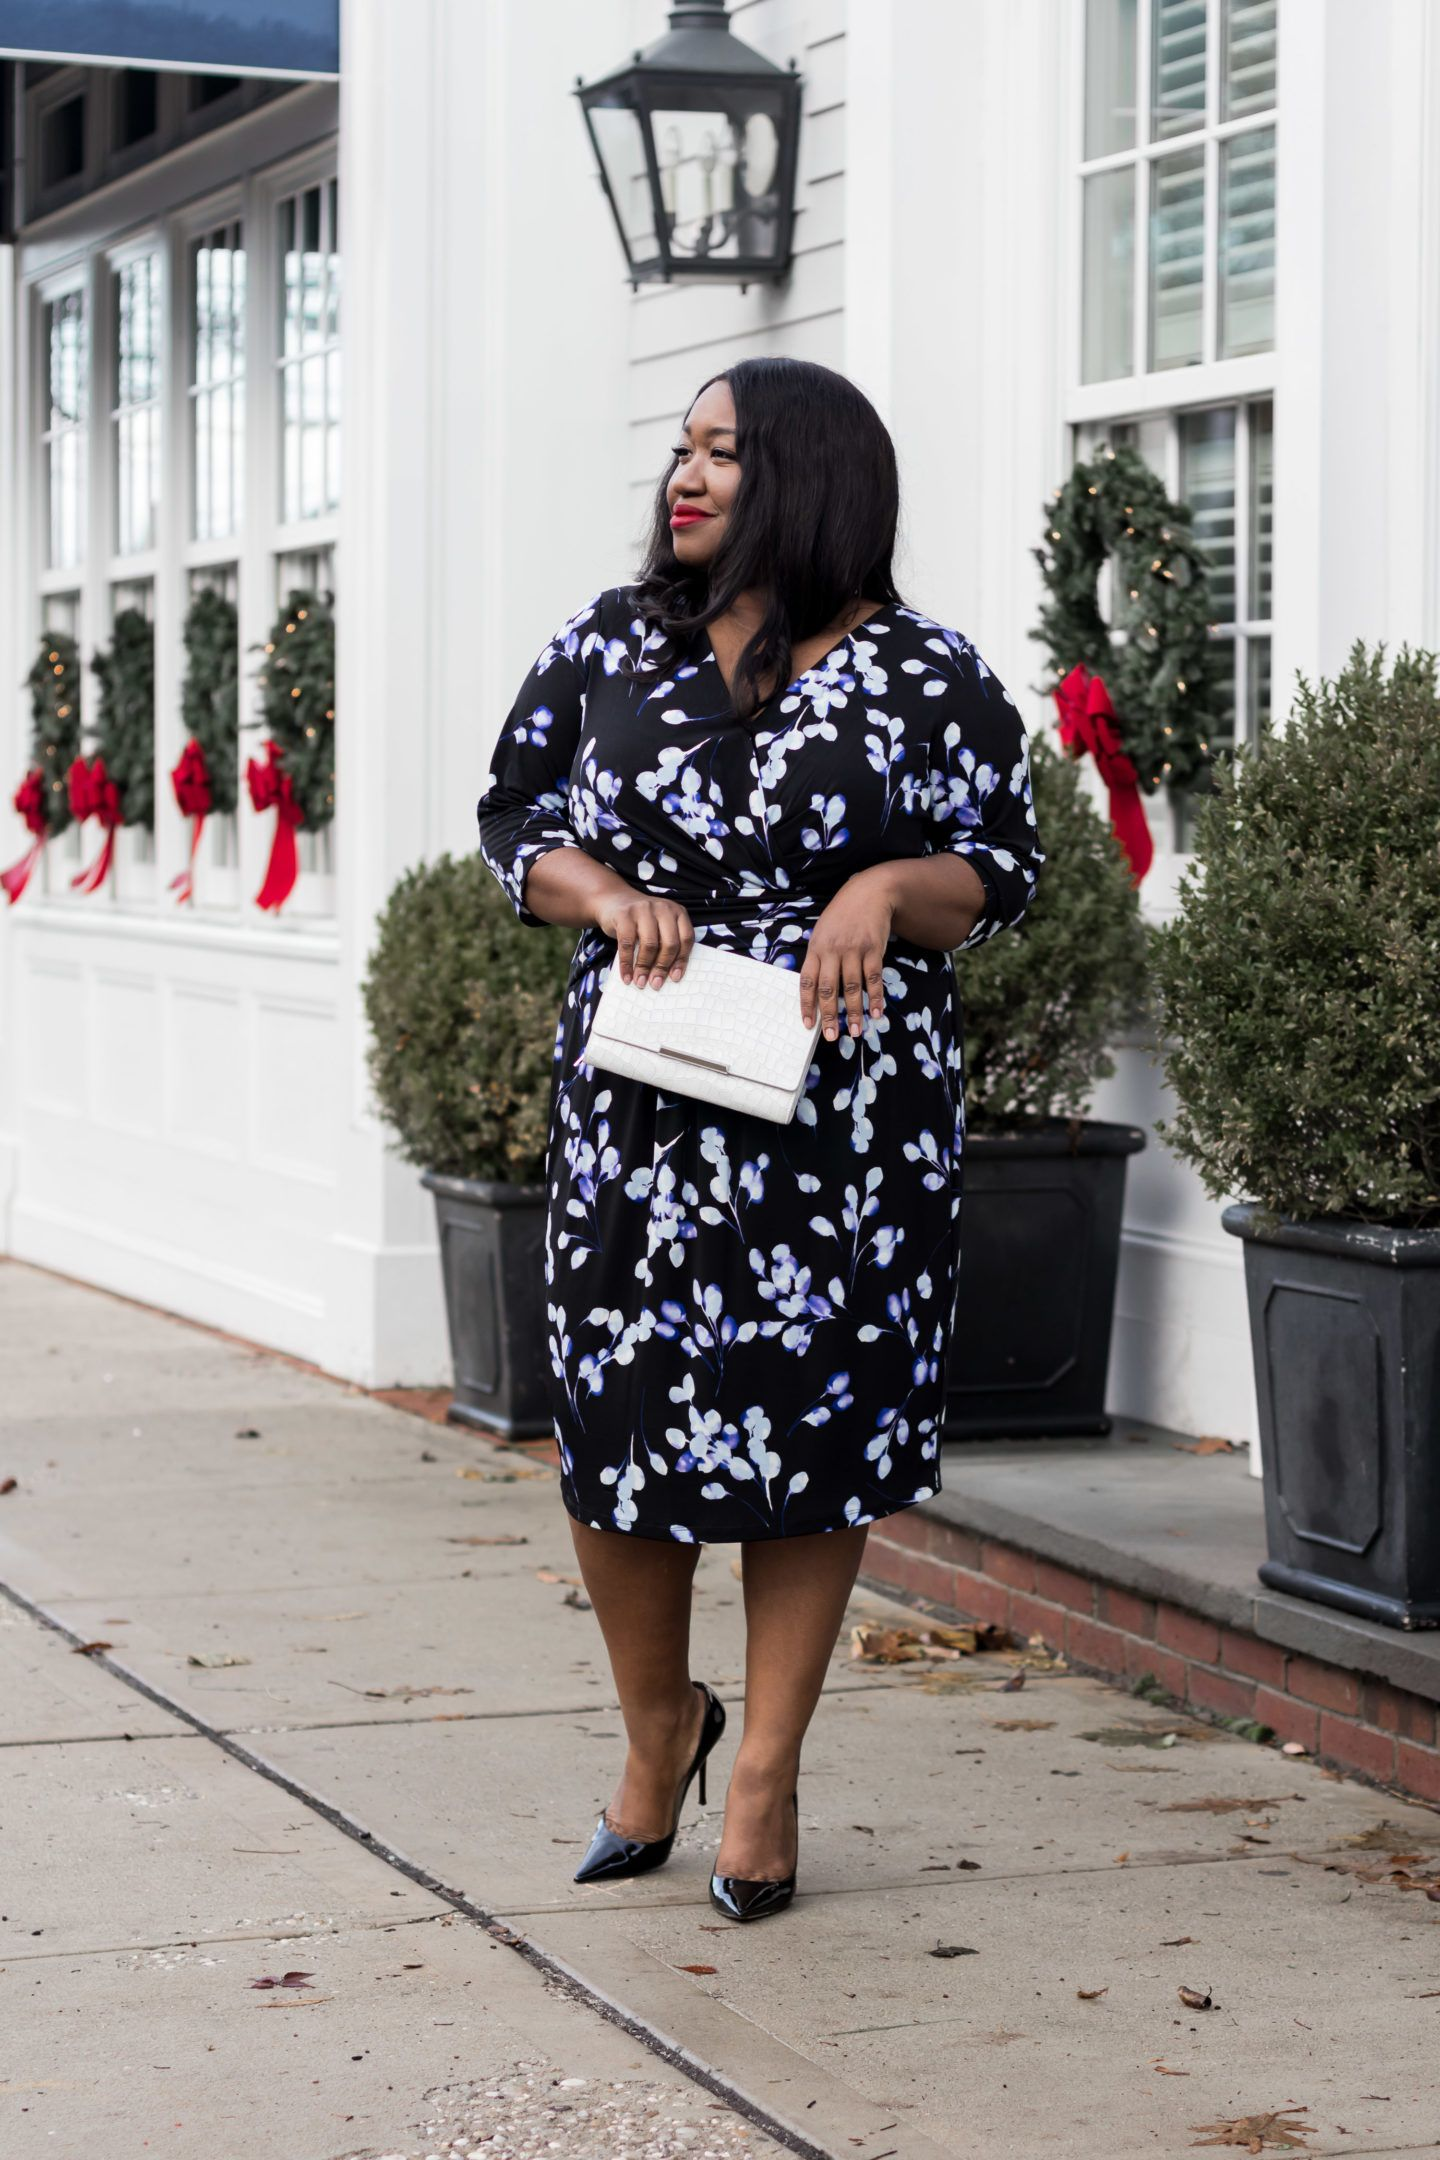 6a53ac48ee0 Plus Size Date Night Outfit • Plus Size Fashion • Dress the Part • Shapely  Chic Sheri  plussize  plussizefashion  style  styleinspiration  ootd   outfits   ...